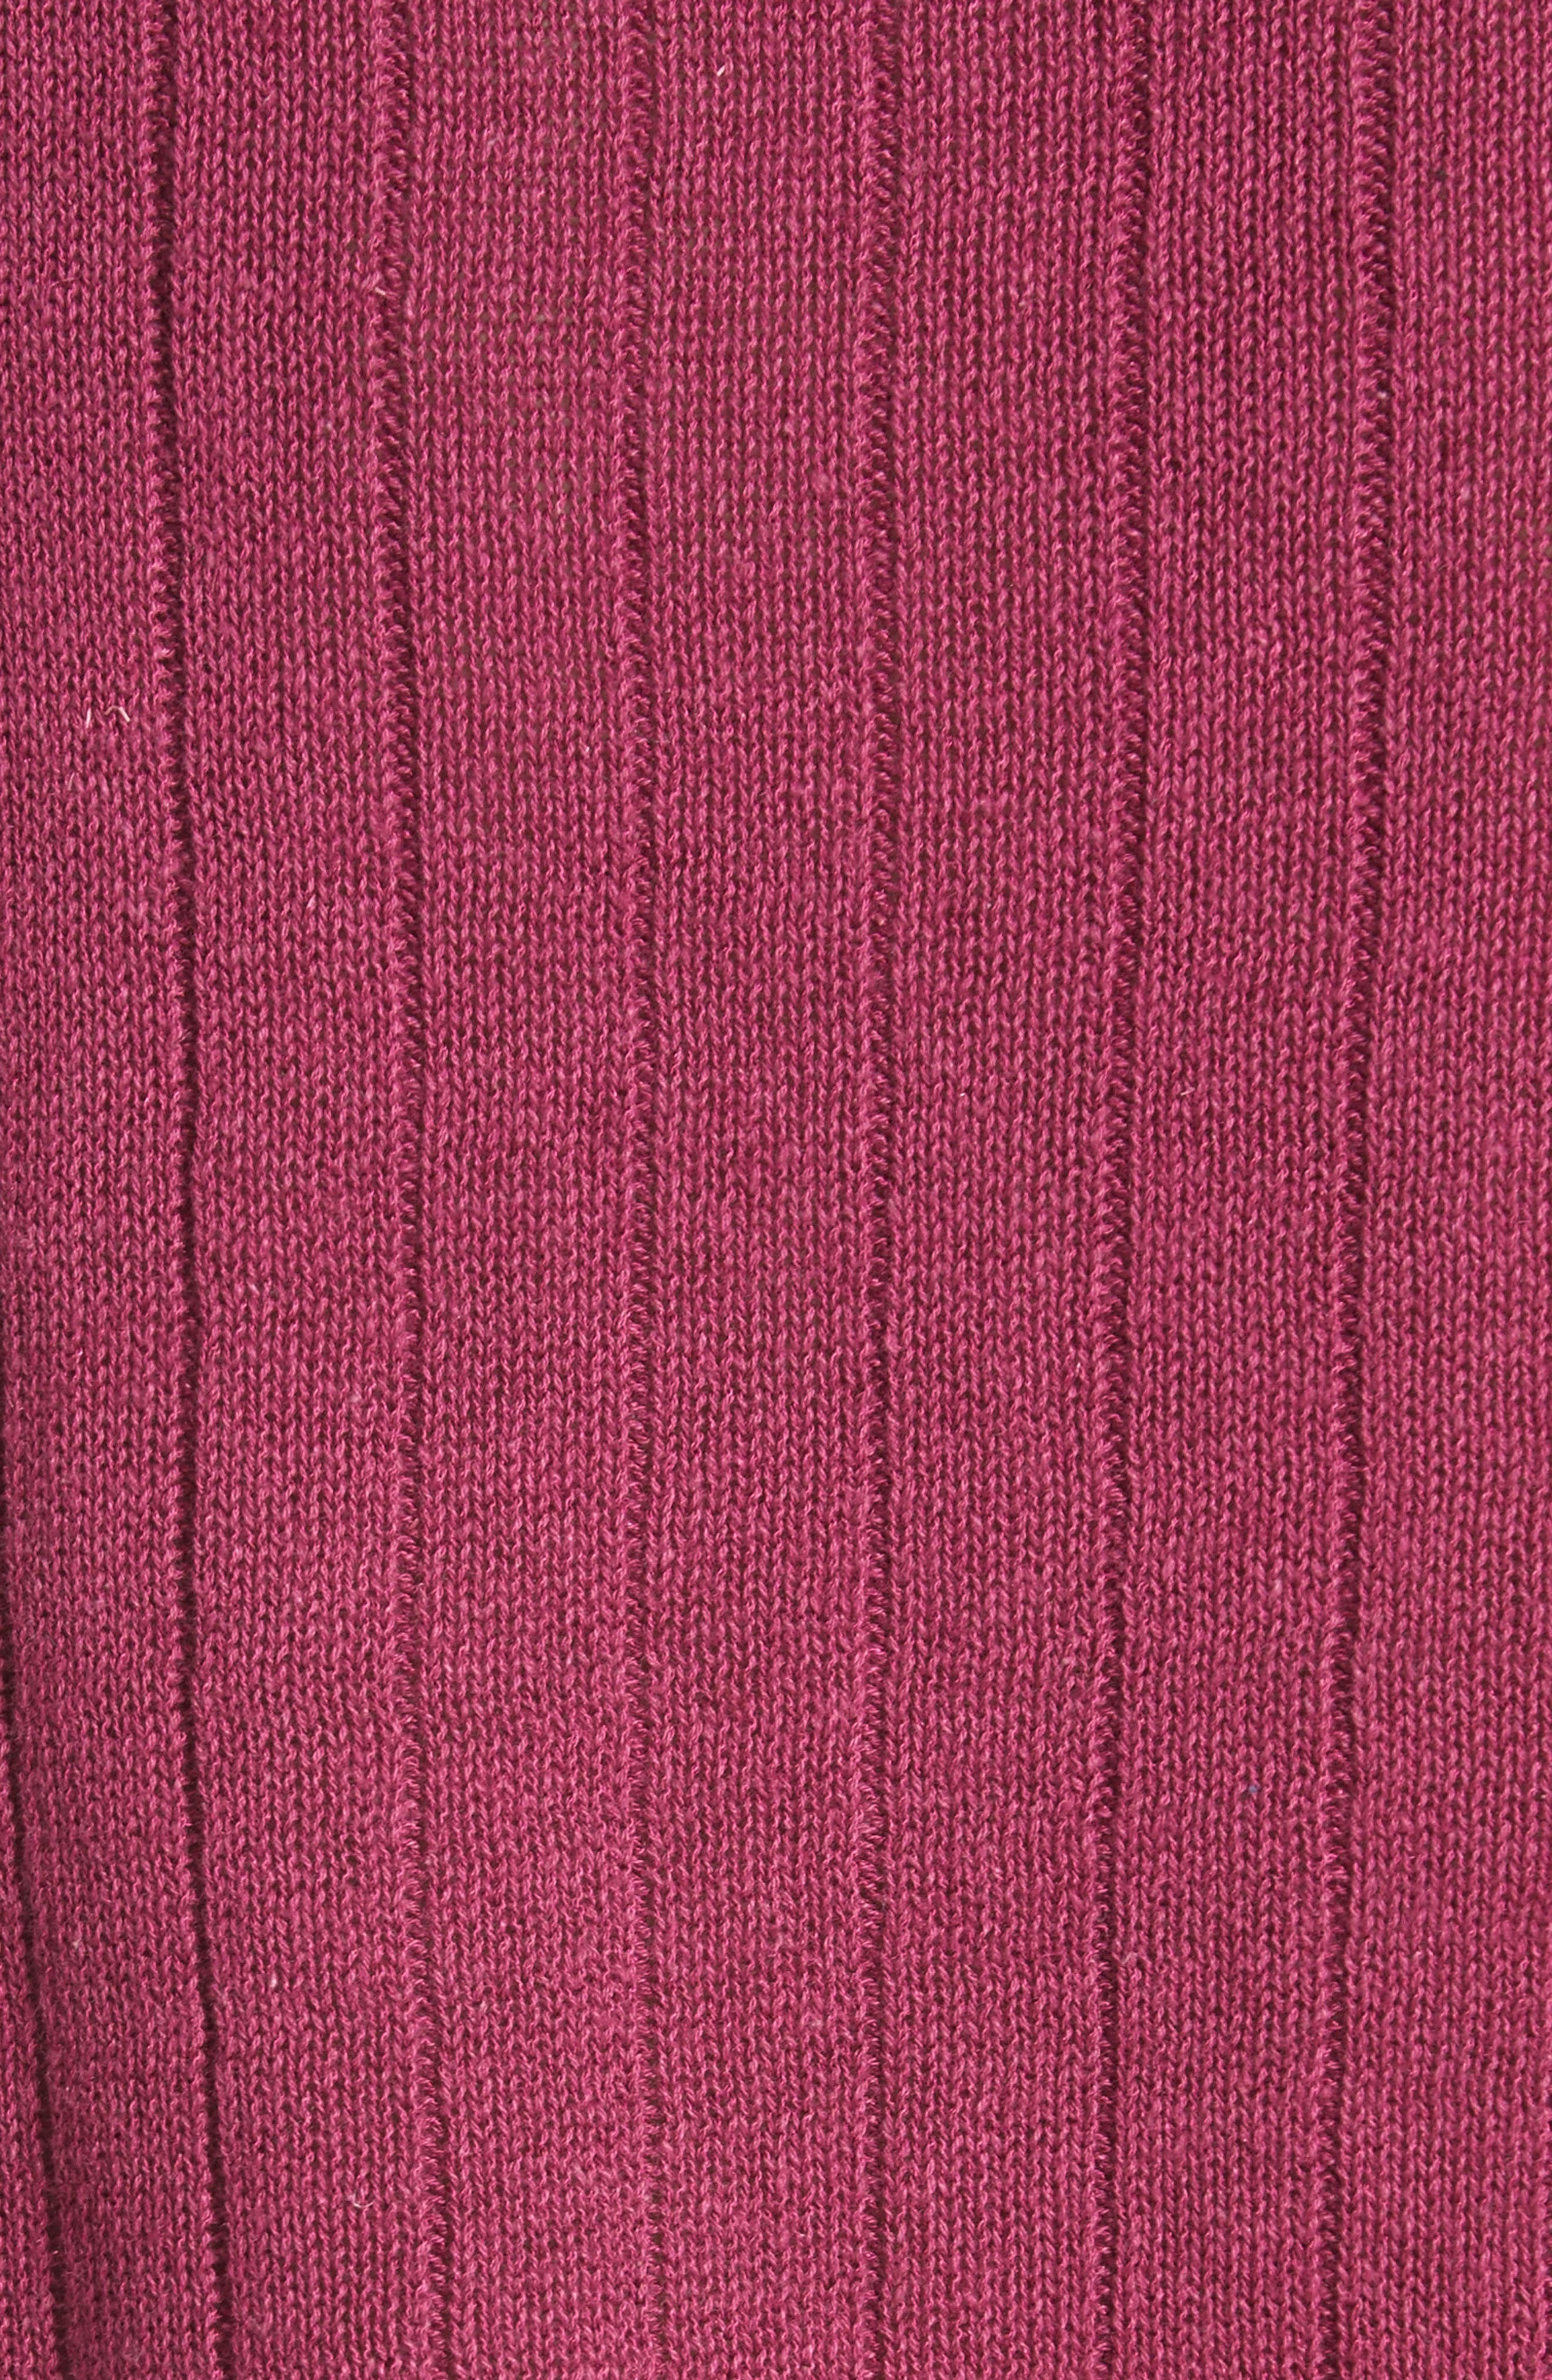 Got Me Twisted Sweater,                             Alternate thumbnail 6, color,                             Wine